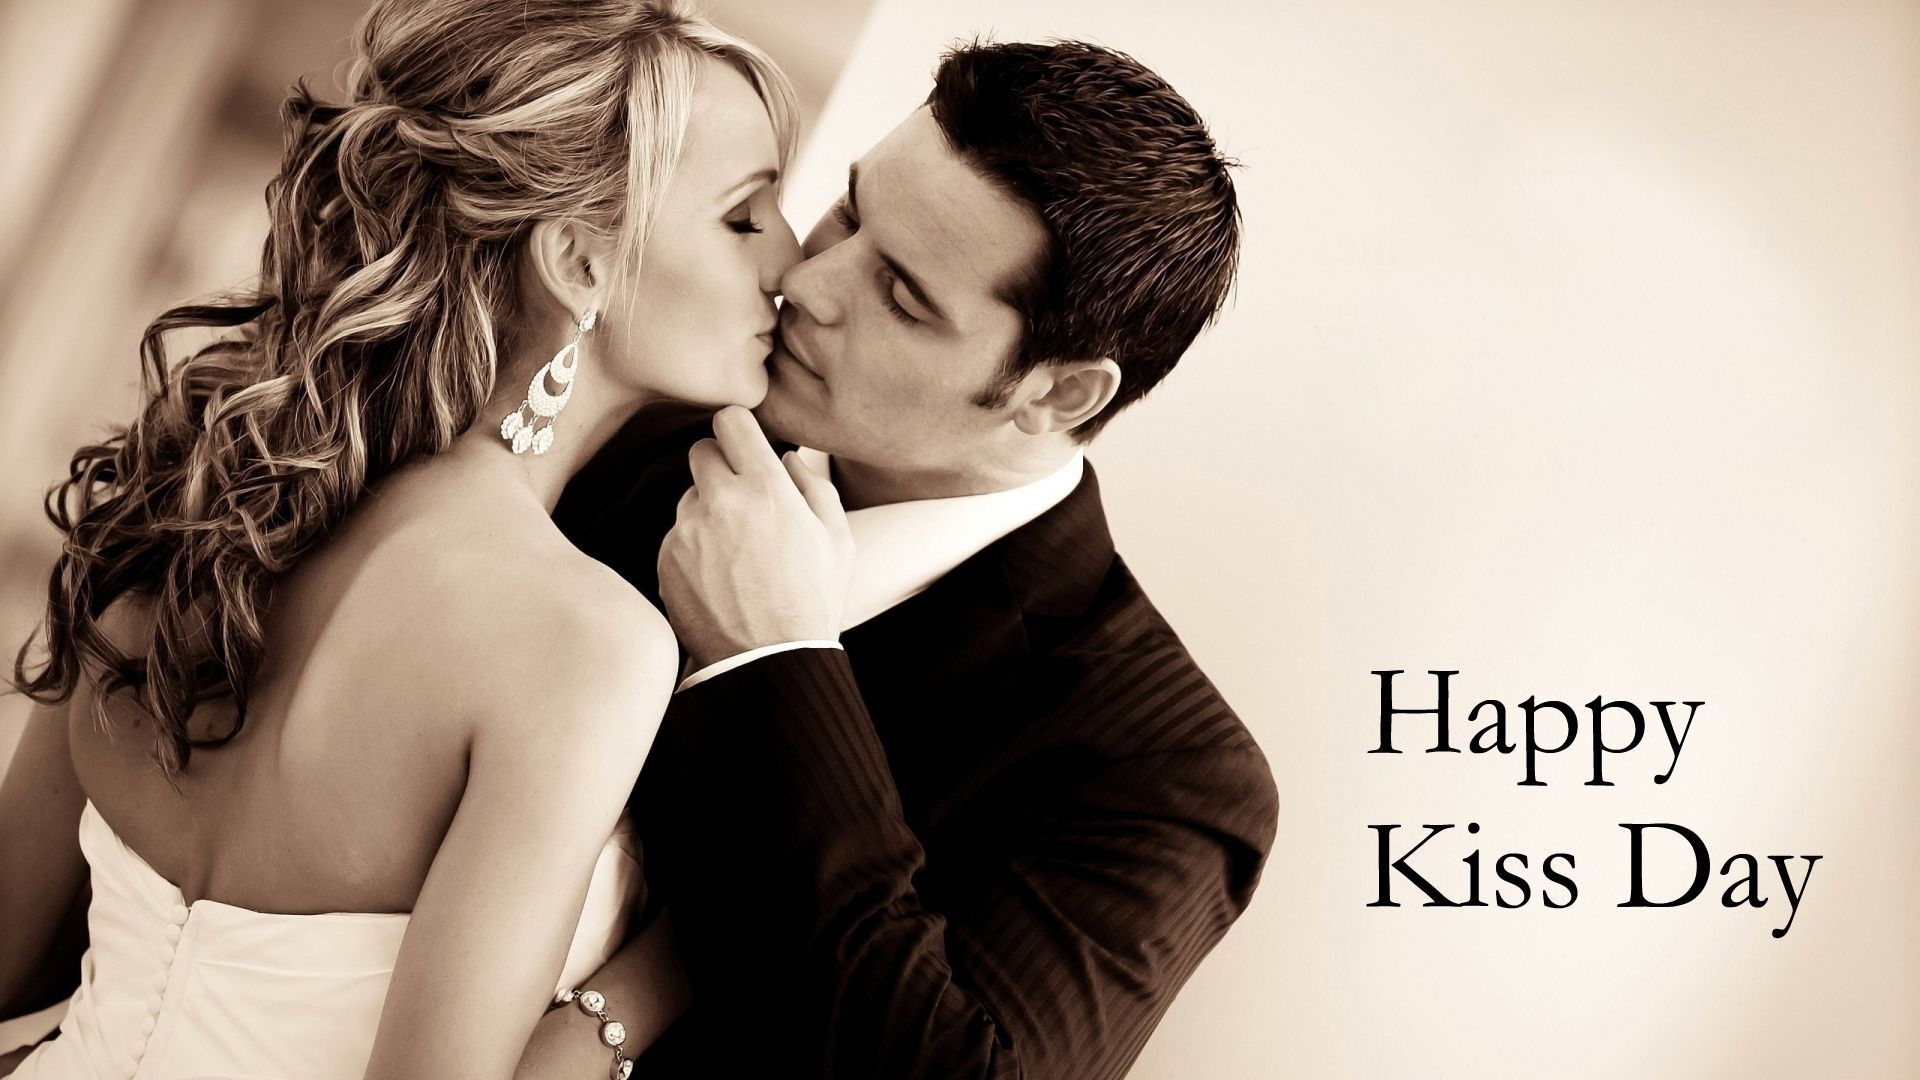 Kiss Day Wallpapers For Mobile Desktop Kiss Day Images Happy